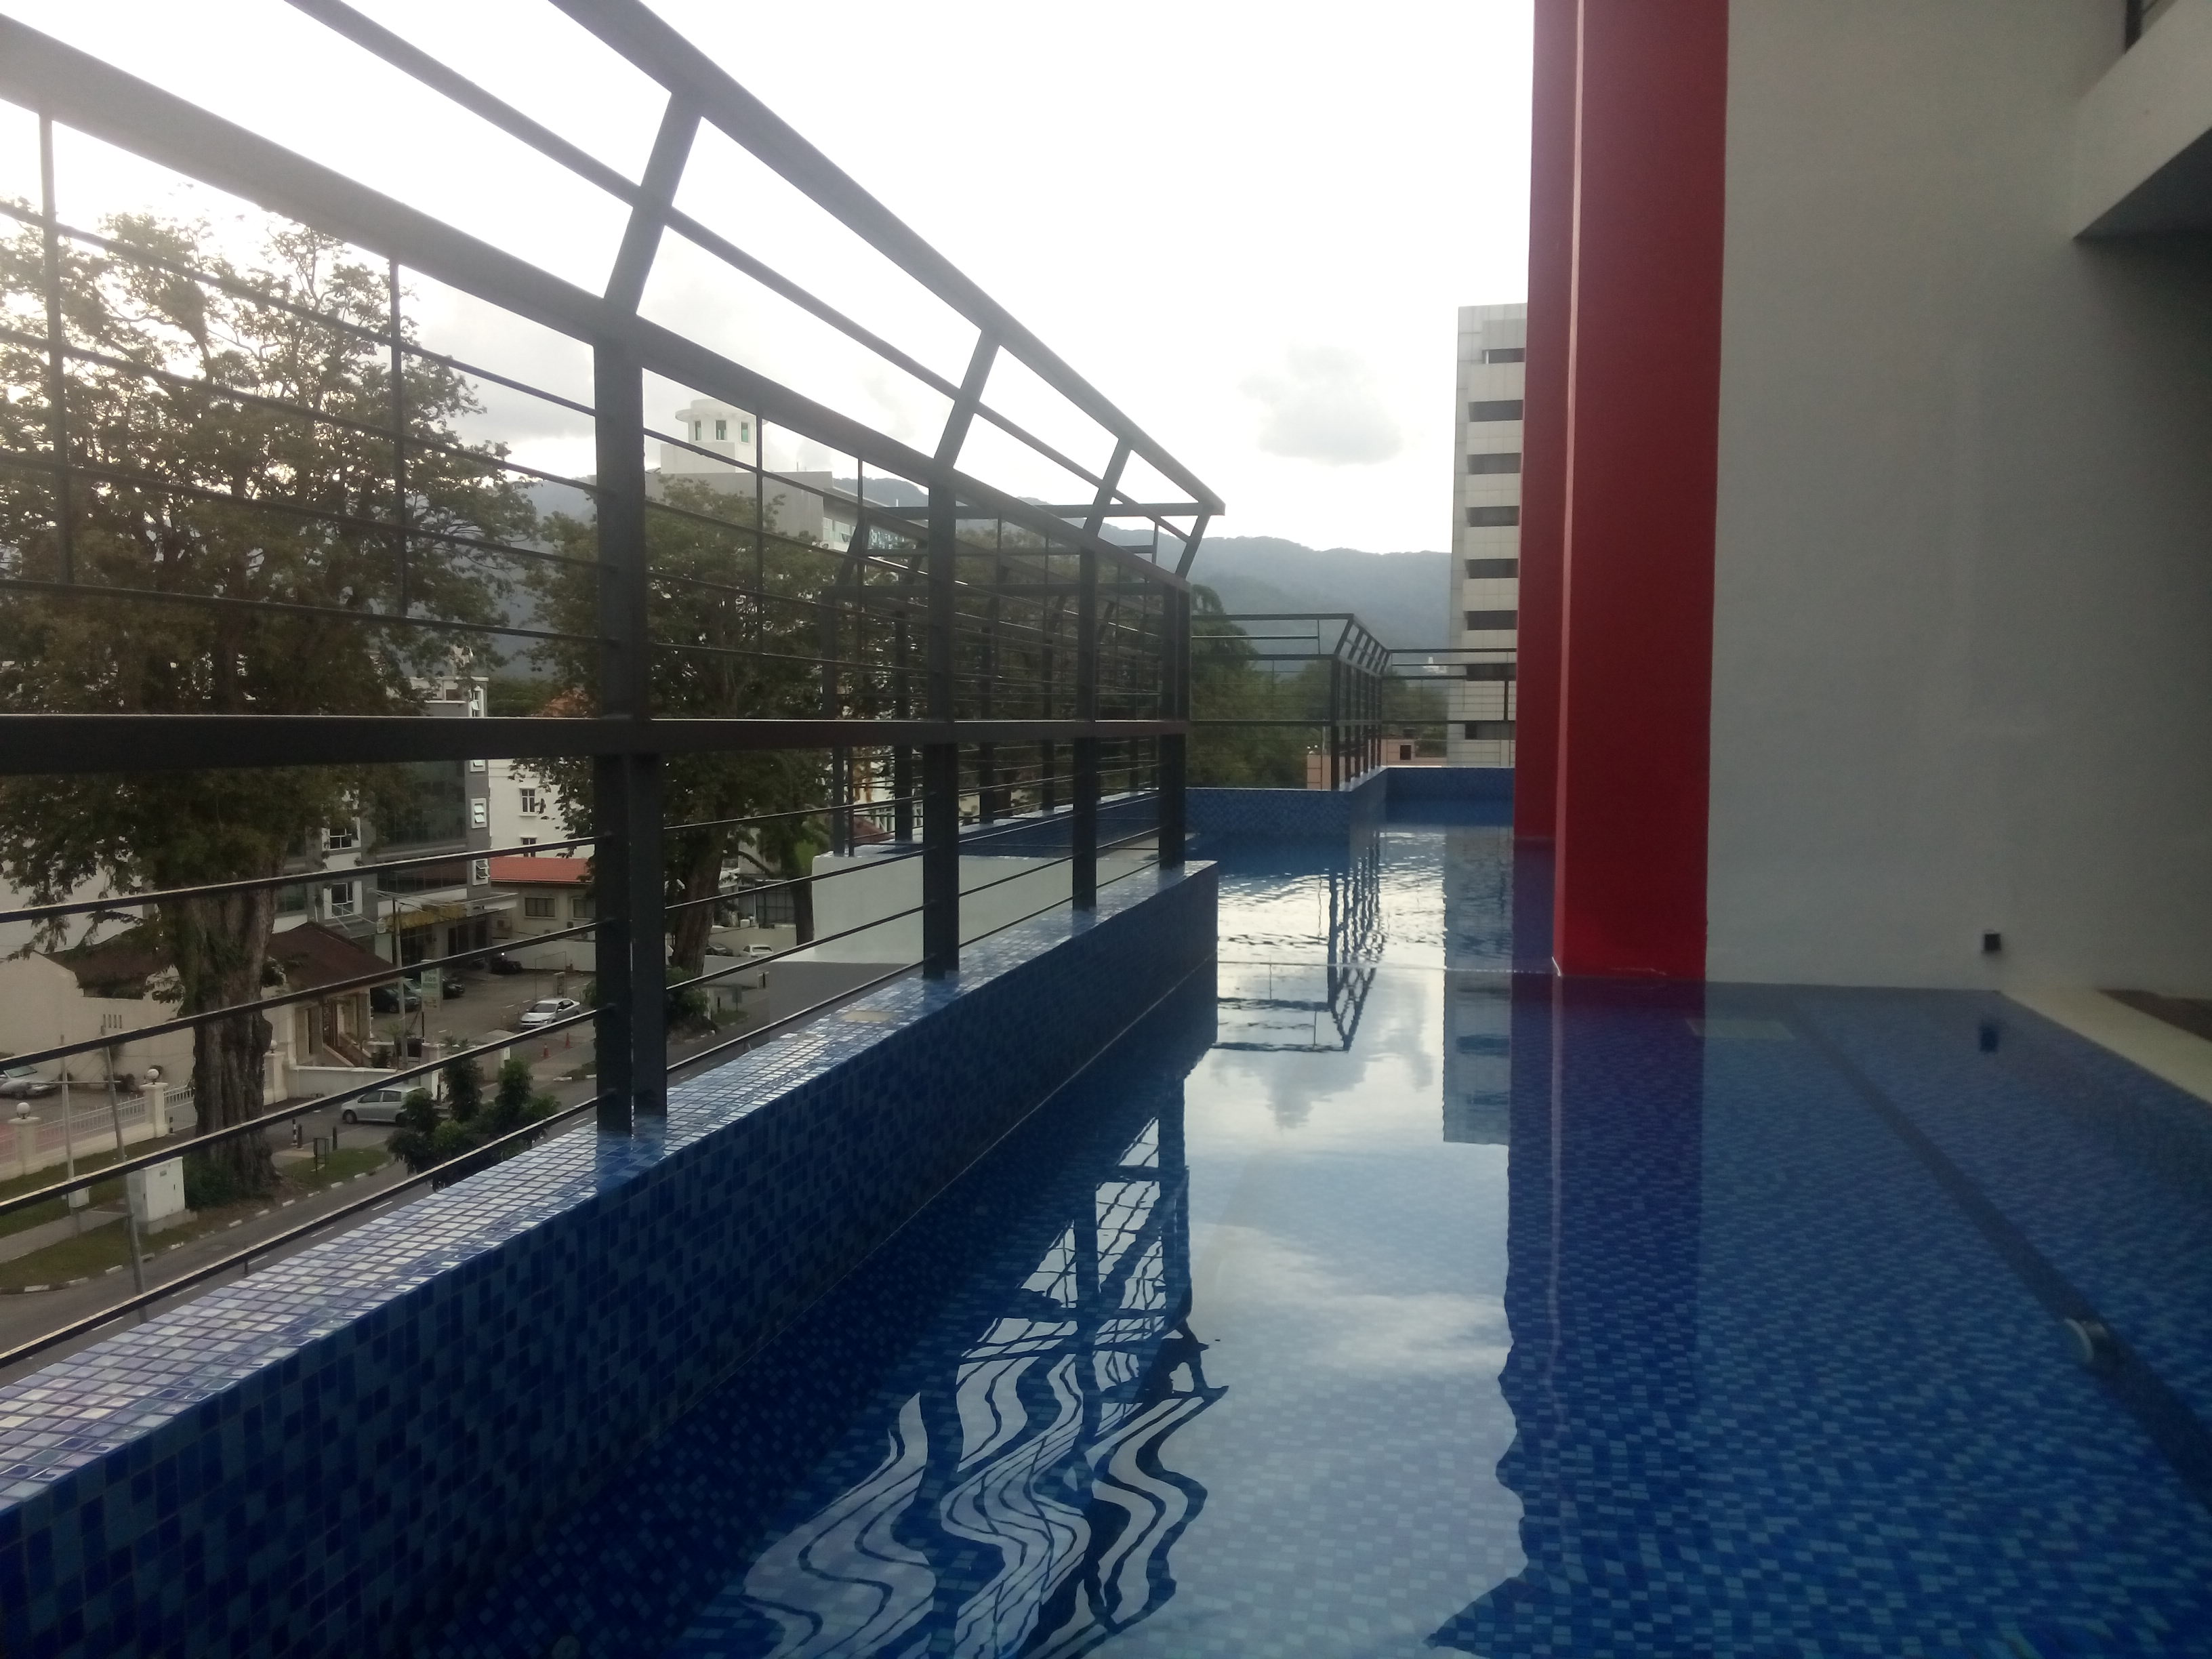 A pool on the edge of a building with mountains in the distance